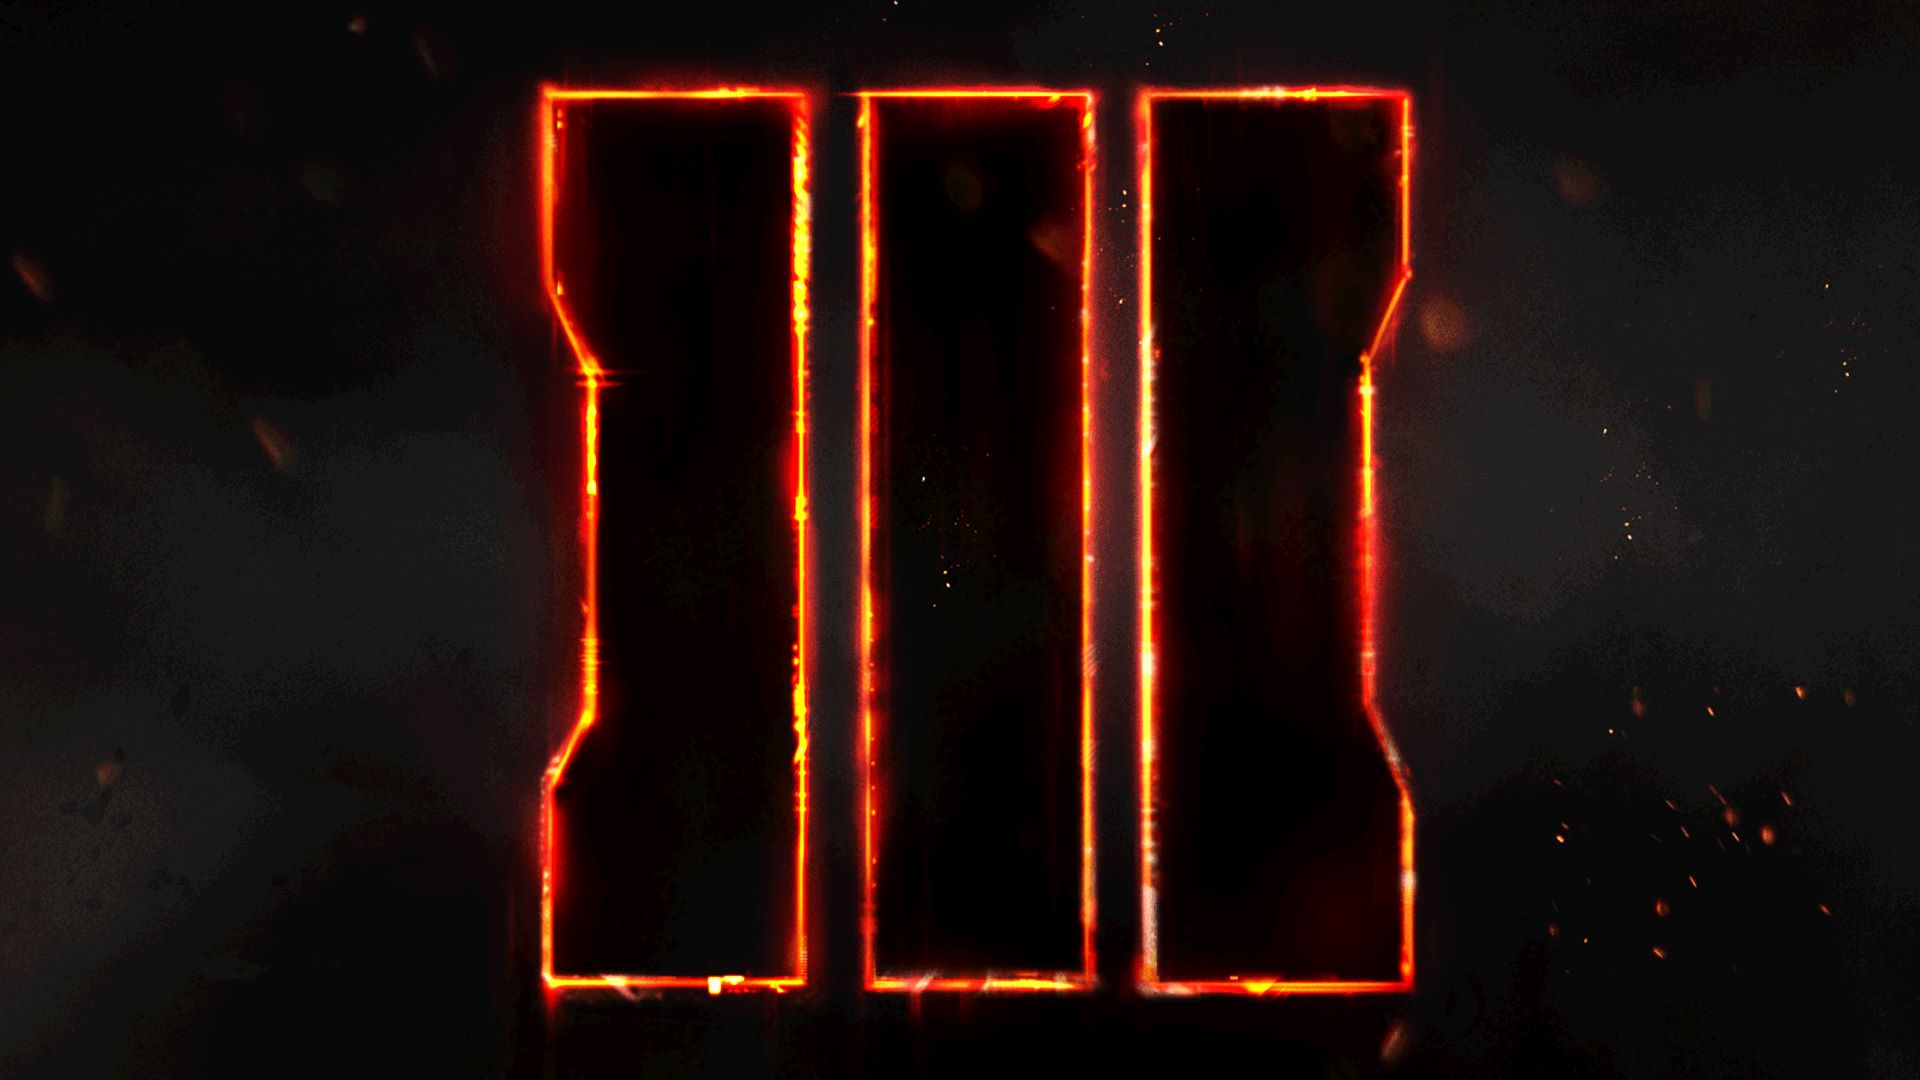 black ops 2 map packs price with Aec429f4 D9b2 4b53 837e 782f7d7d5165 on Call Of Duty Season Pass Xbox also Ps4 Awakening Black Ops 3 Dlc 5 Things To Know as well Aec429f4 D9b2 4b53 837e 782f7d7d5165 additionally Impressions Call Of Duty Black Ops First Strike Dlc 193081 in addition 125911.